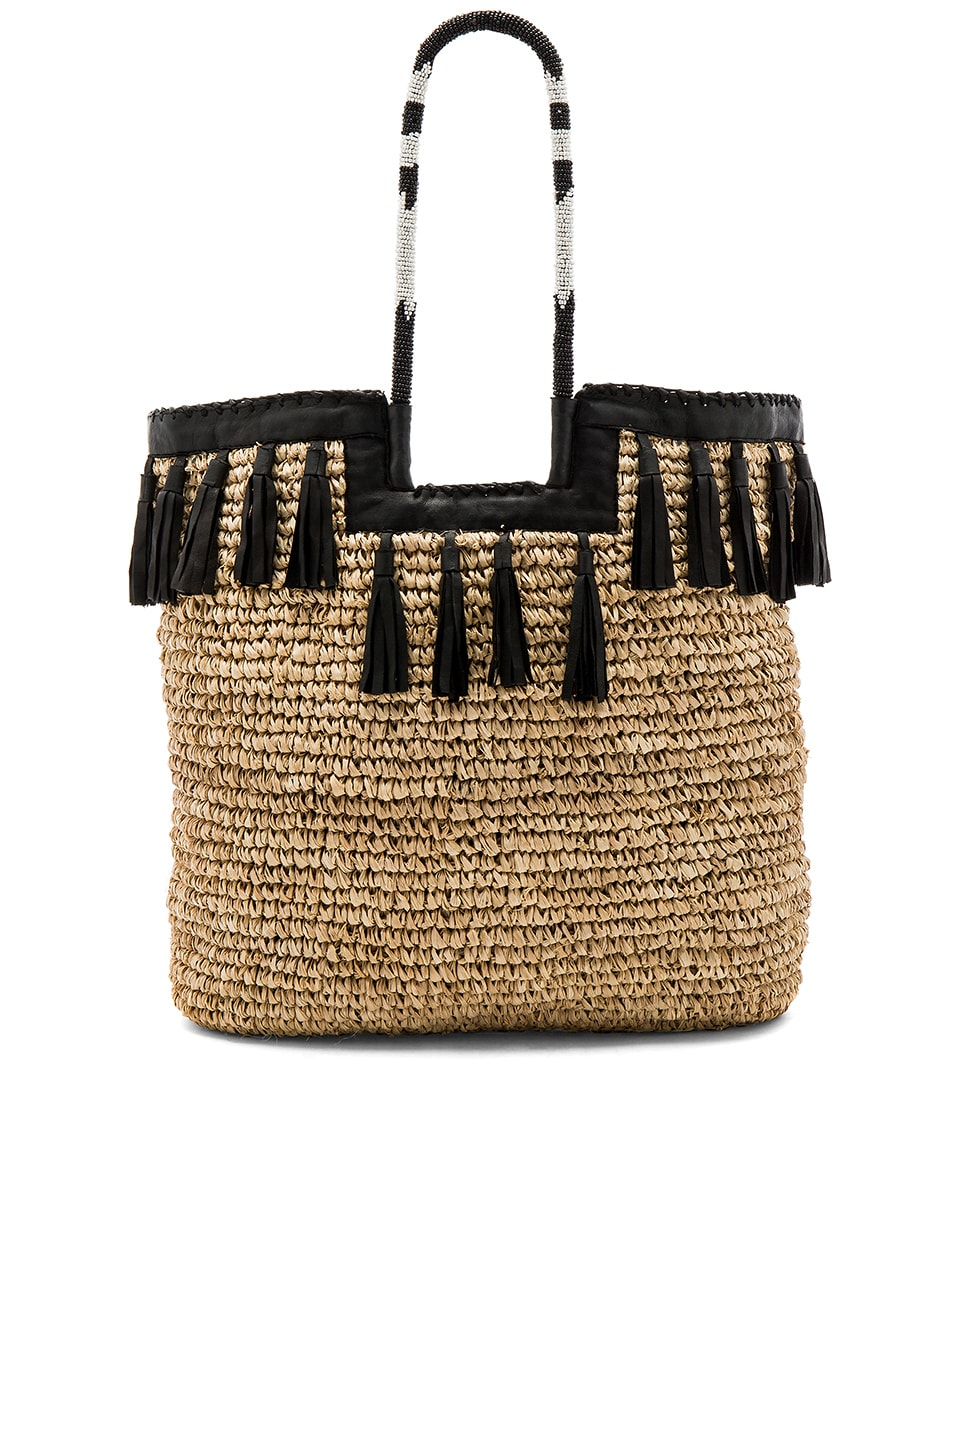 Woven raffia tote bag with tassel detailing